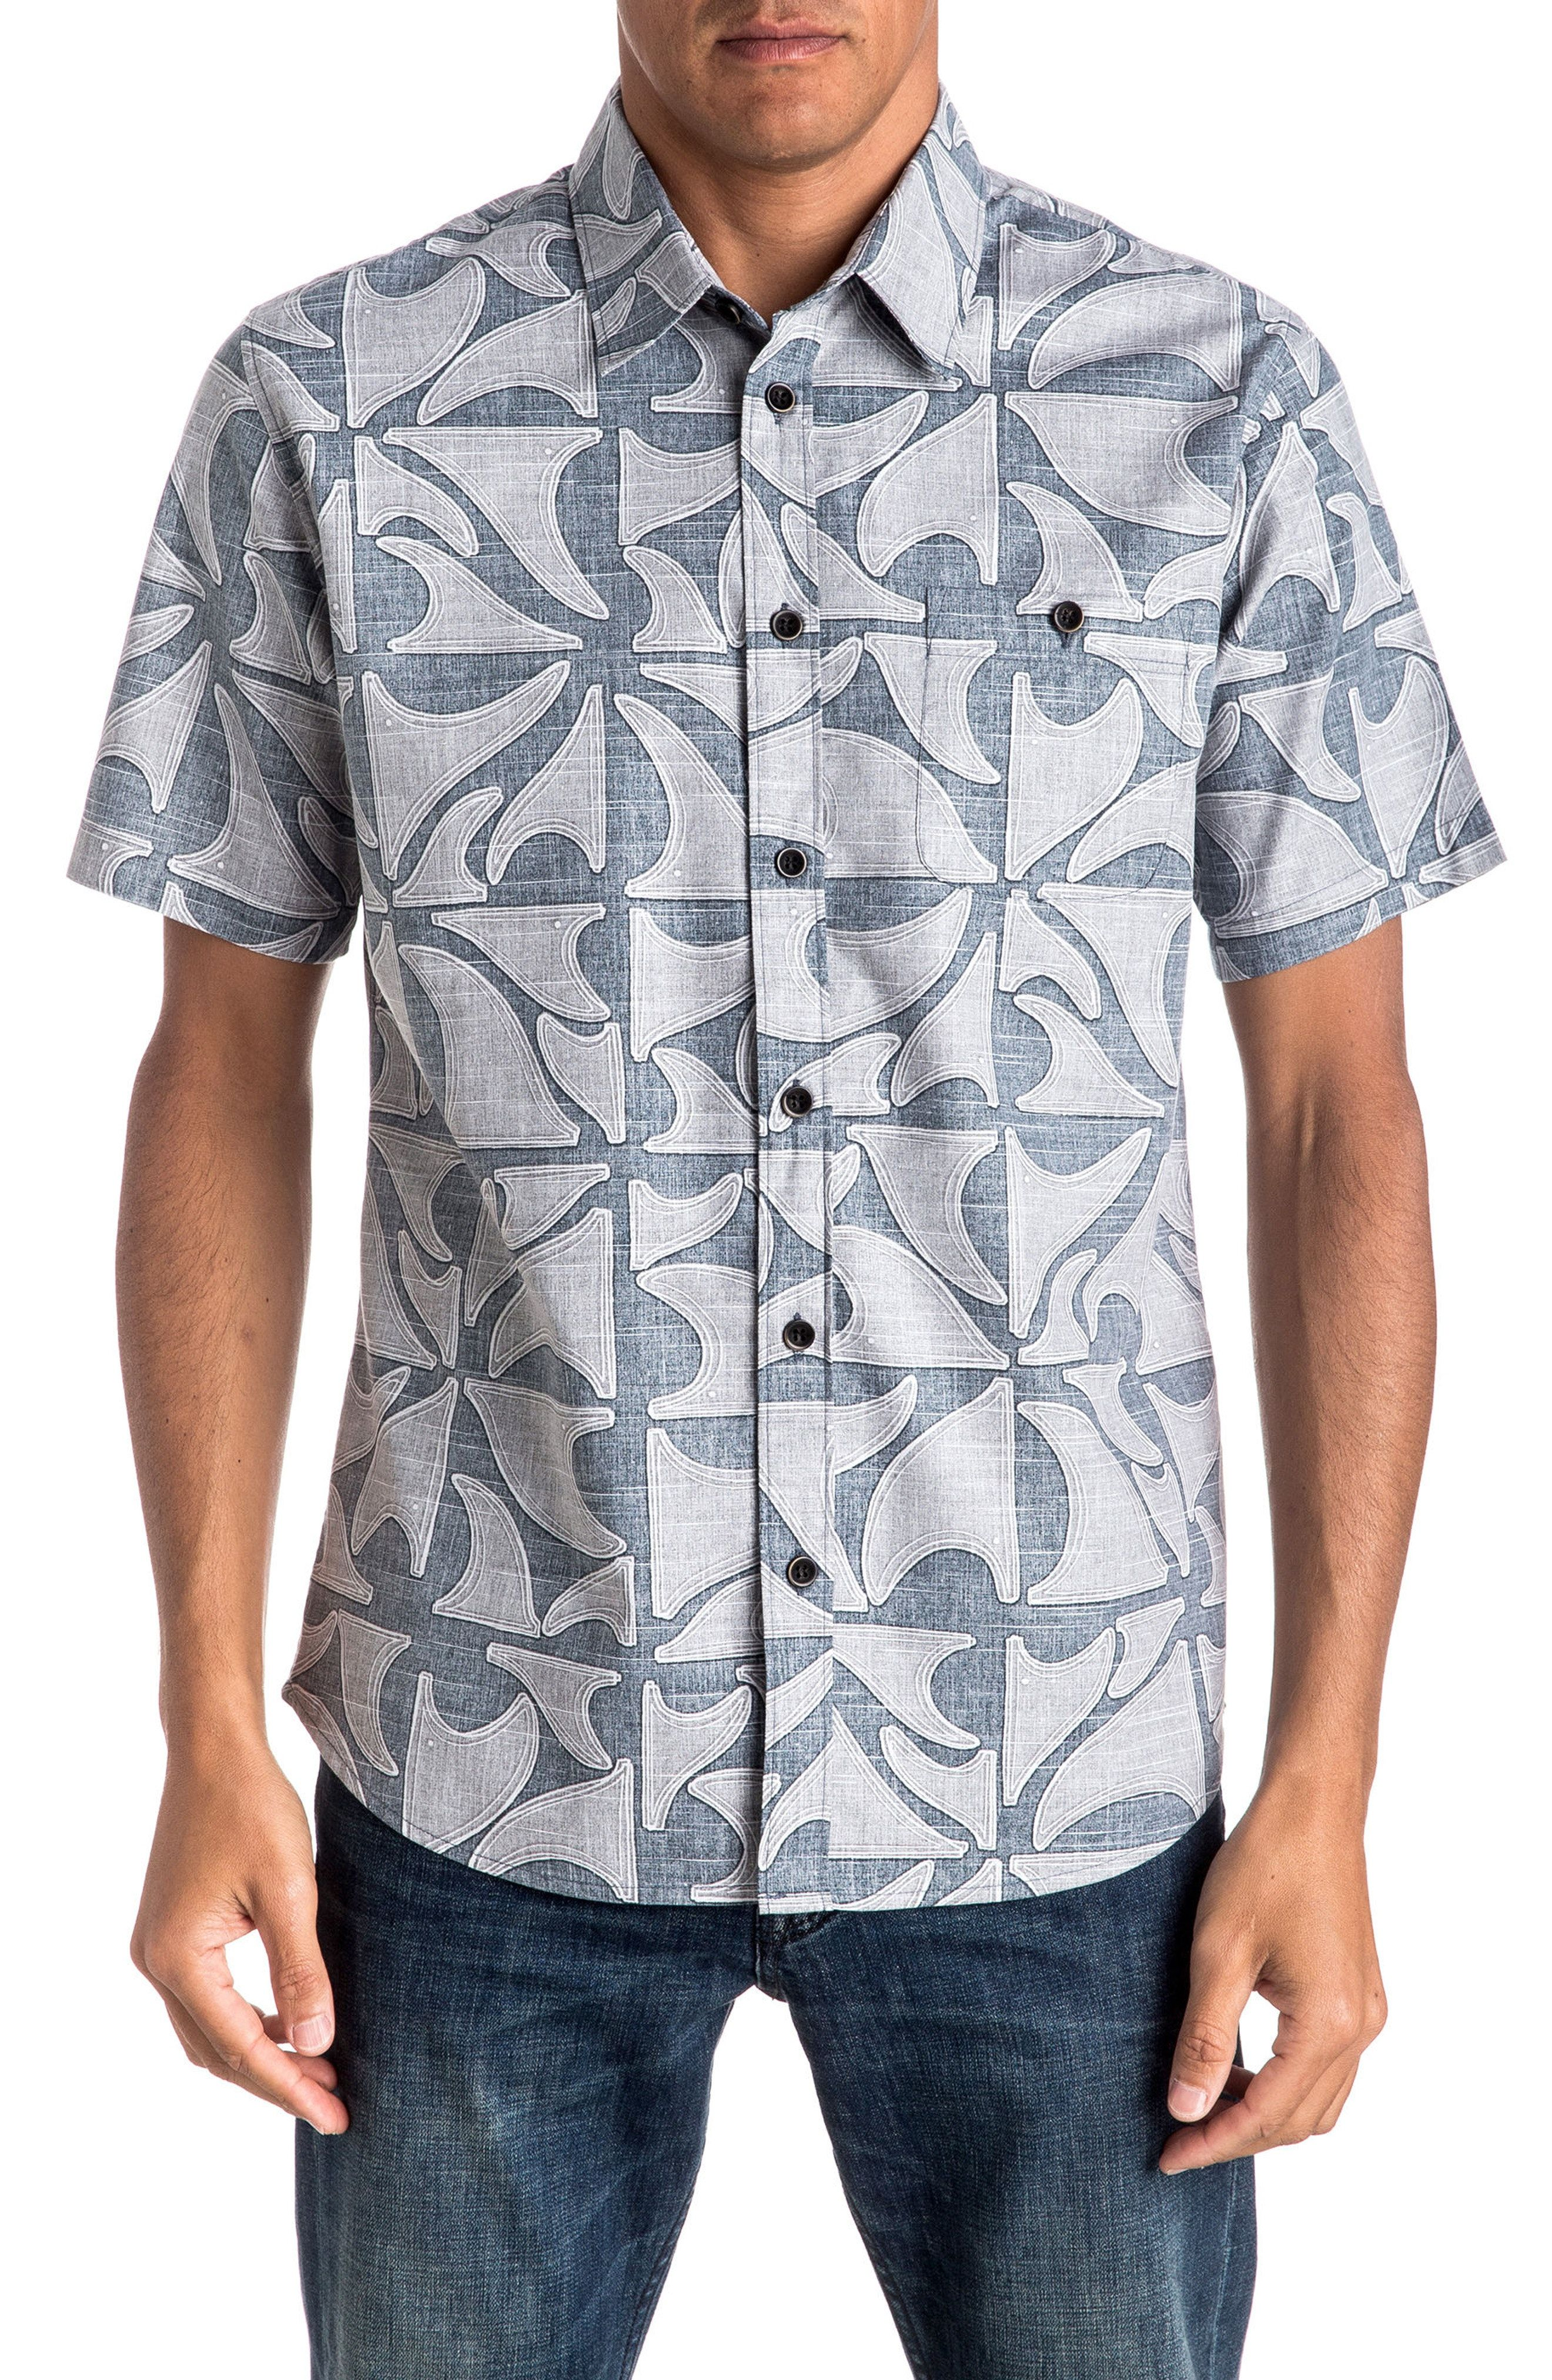 New Quiksilver Waterman Collection Finisteria Regular Fit Print Sport Shirt   9d02a51848c